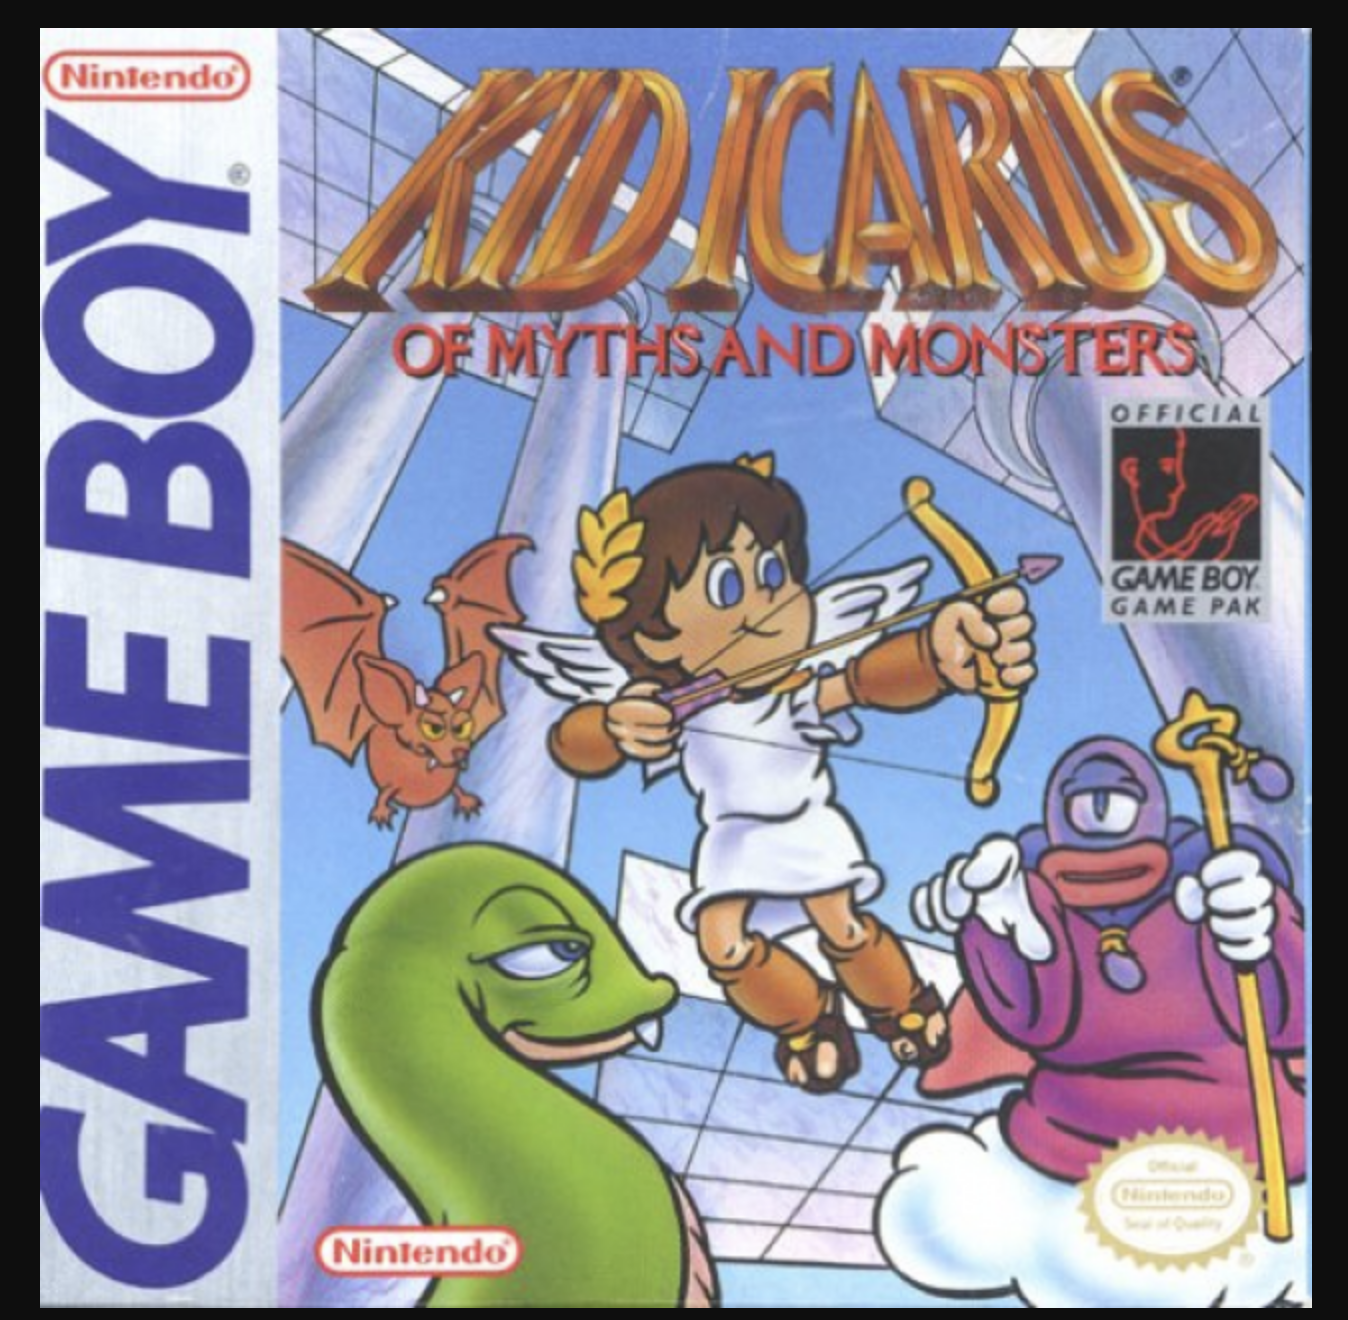 Kid Icarus: Of Myths and Monsters (1991). Used under Creative Commons License (accessed: May 24, 2018).